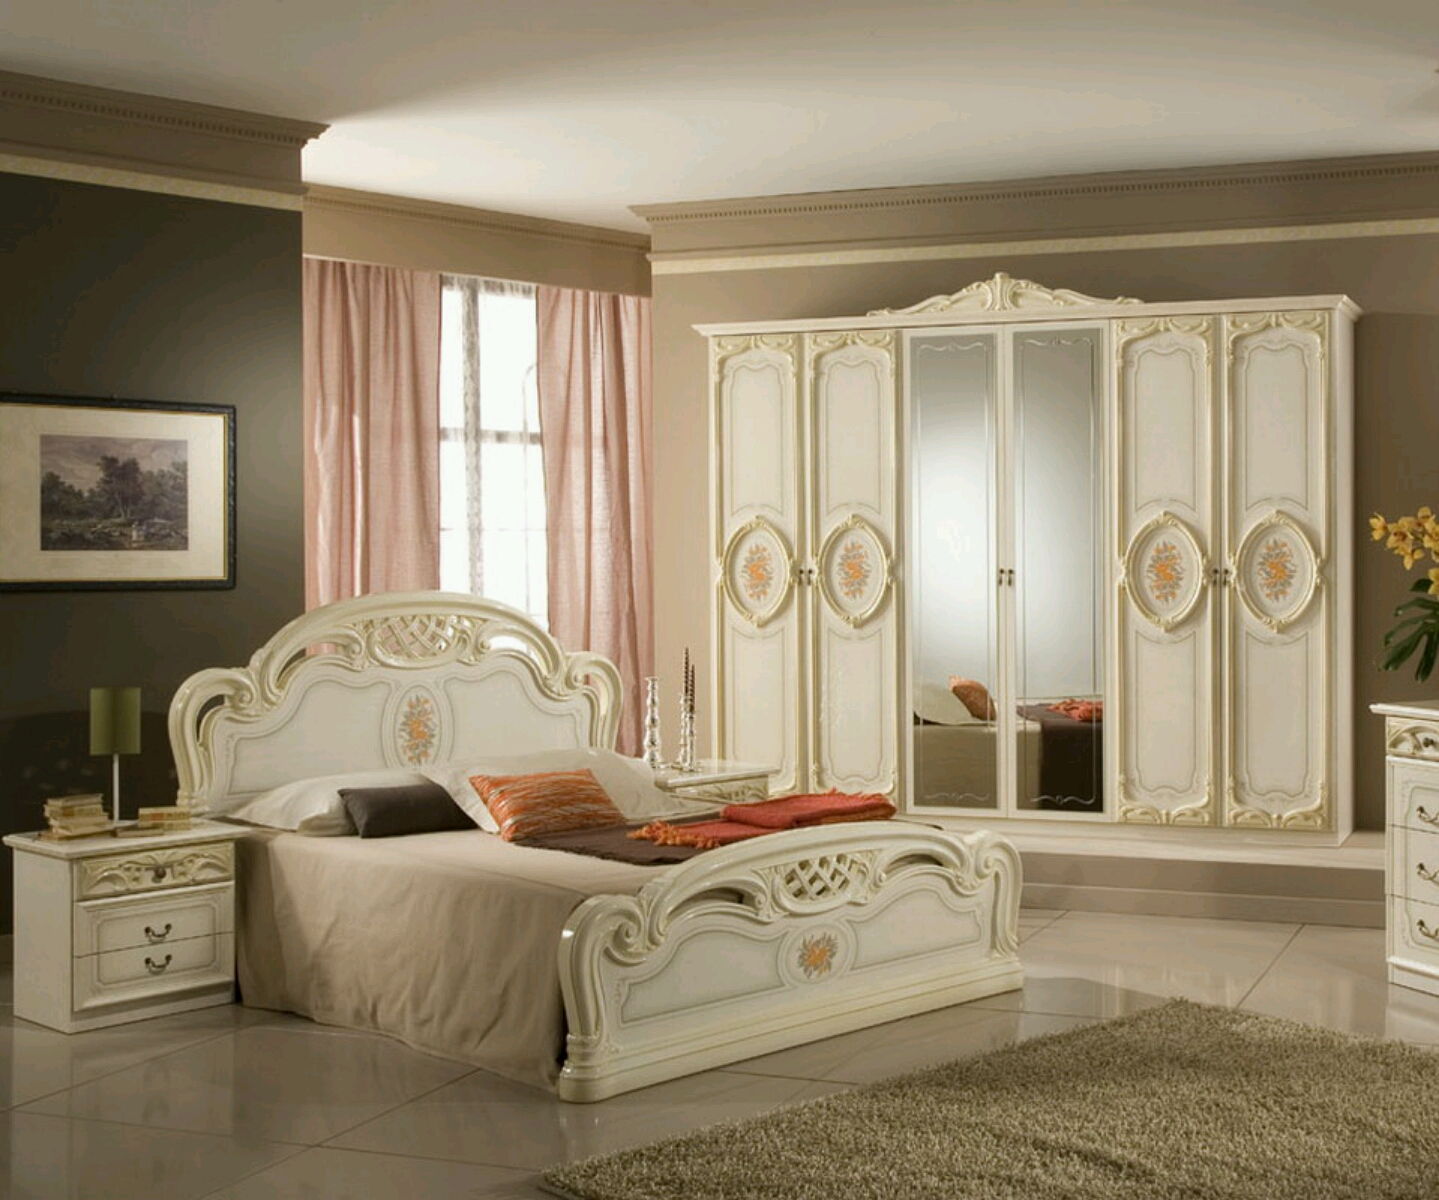 Modern luxury bedroom furniture designs ideas vintage Modern bedroom with antique furniture